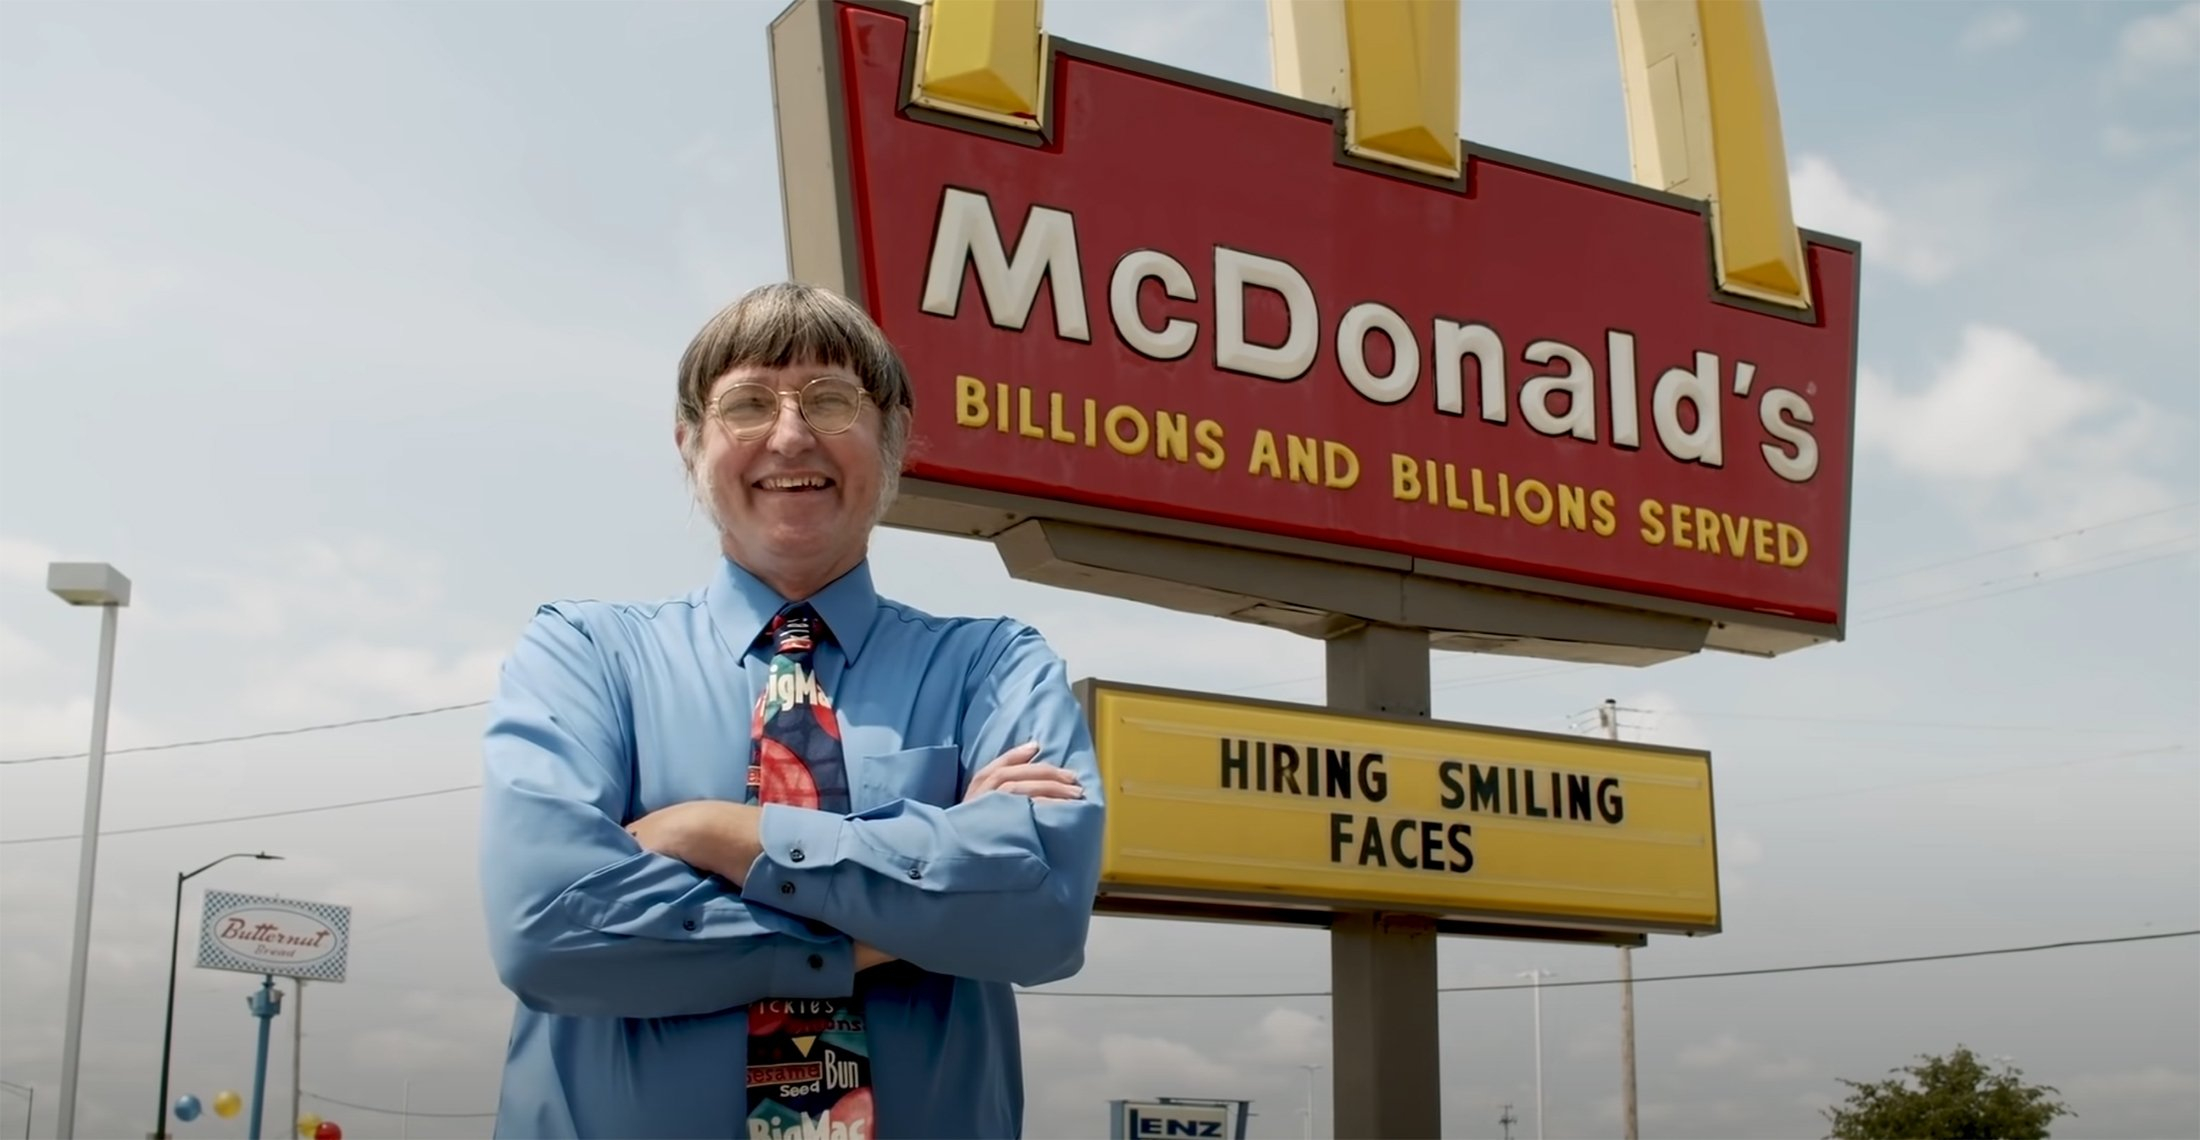 Donald Gorske smiles in front of McDonald's golden arches logo in this still image from a video on Guinness World Records' official YouTube channel. (Guinness World Records via YouTube)